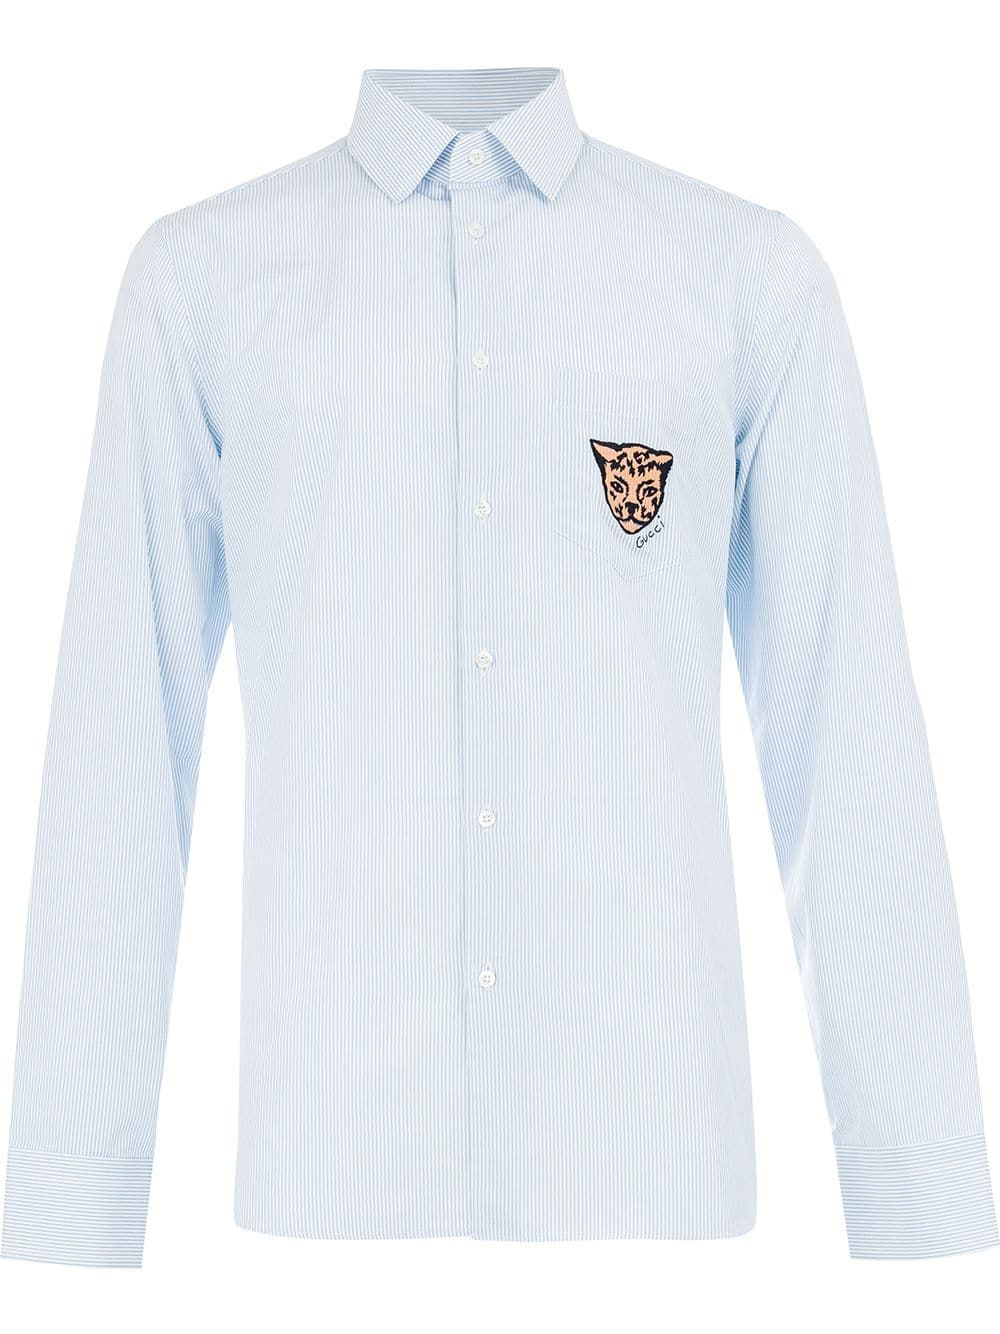 aa2ea186d7fd Gucci leopard crest striped shirt - Blue in 2019 | Products | Gucci ...